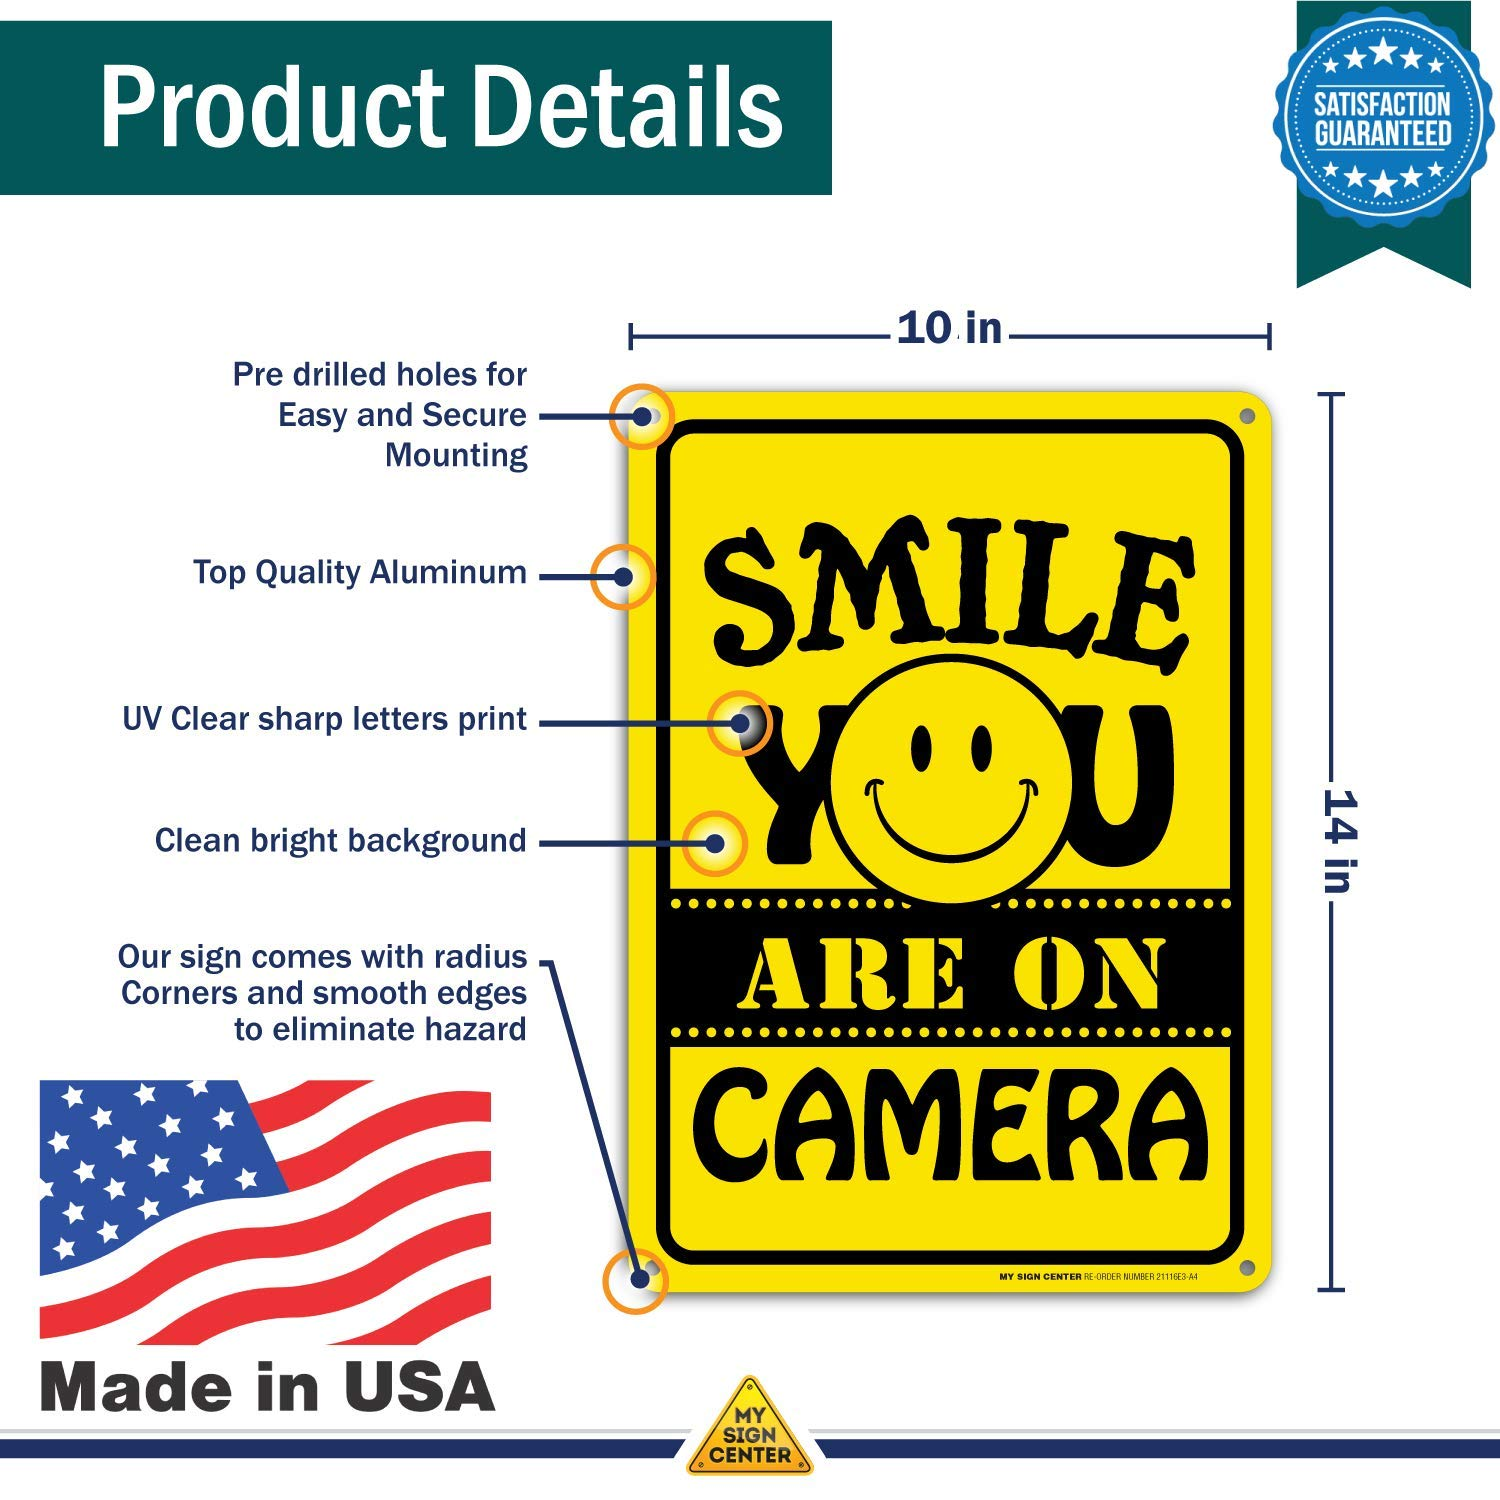 Amazon.com: Señal de la cámara Smile Youre On para ...